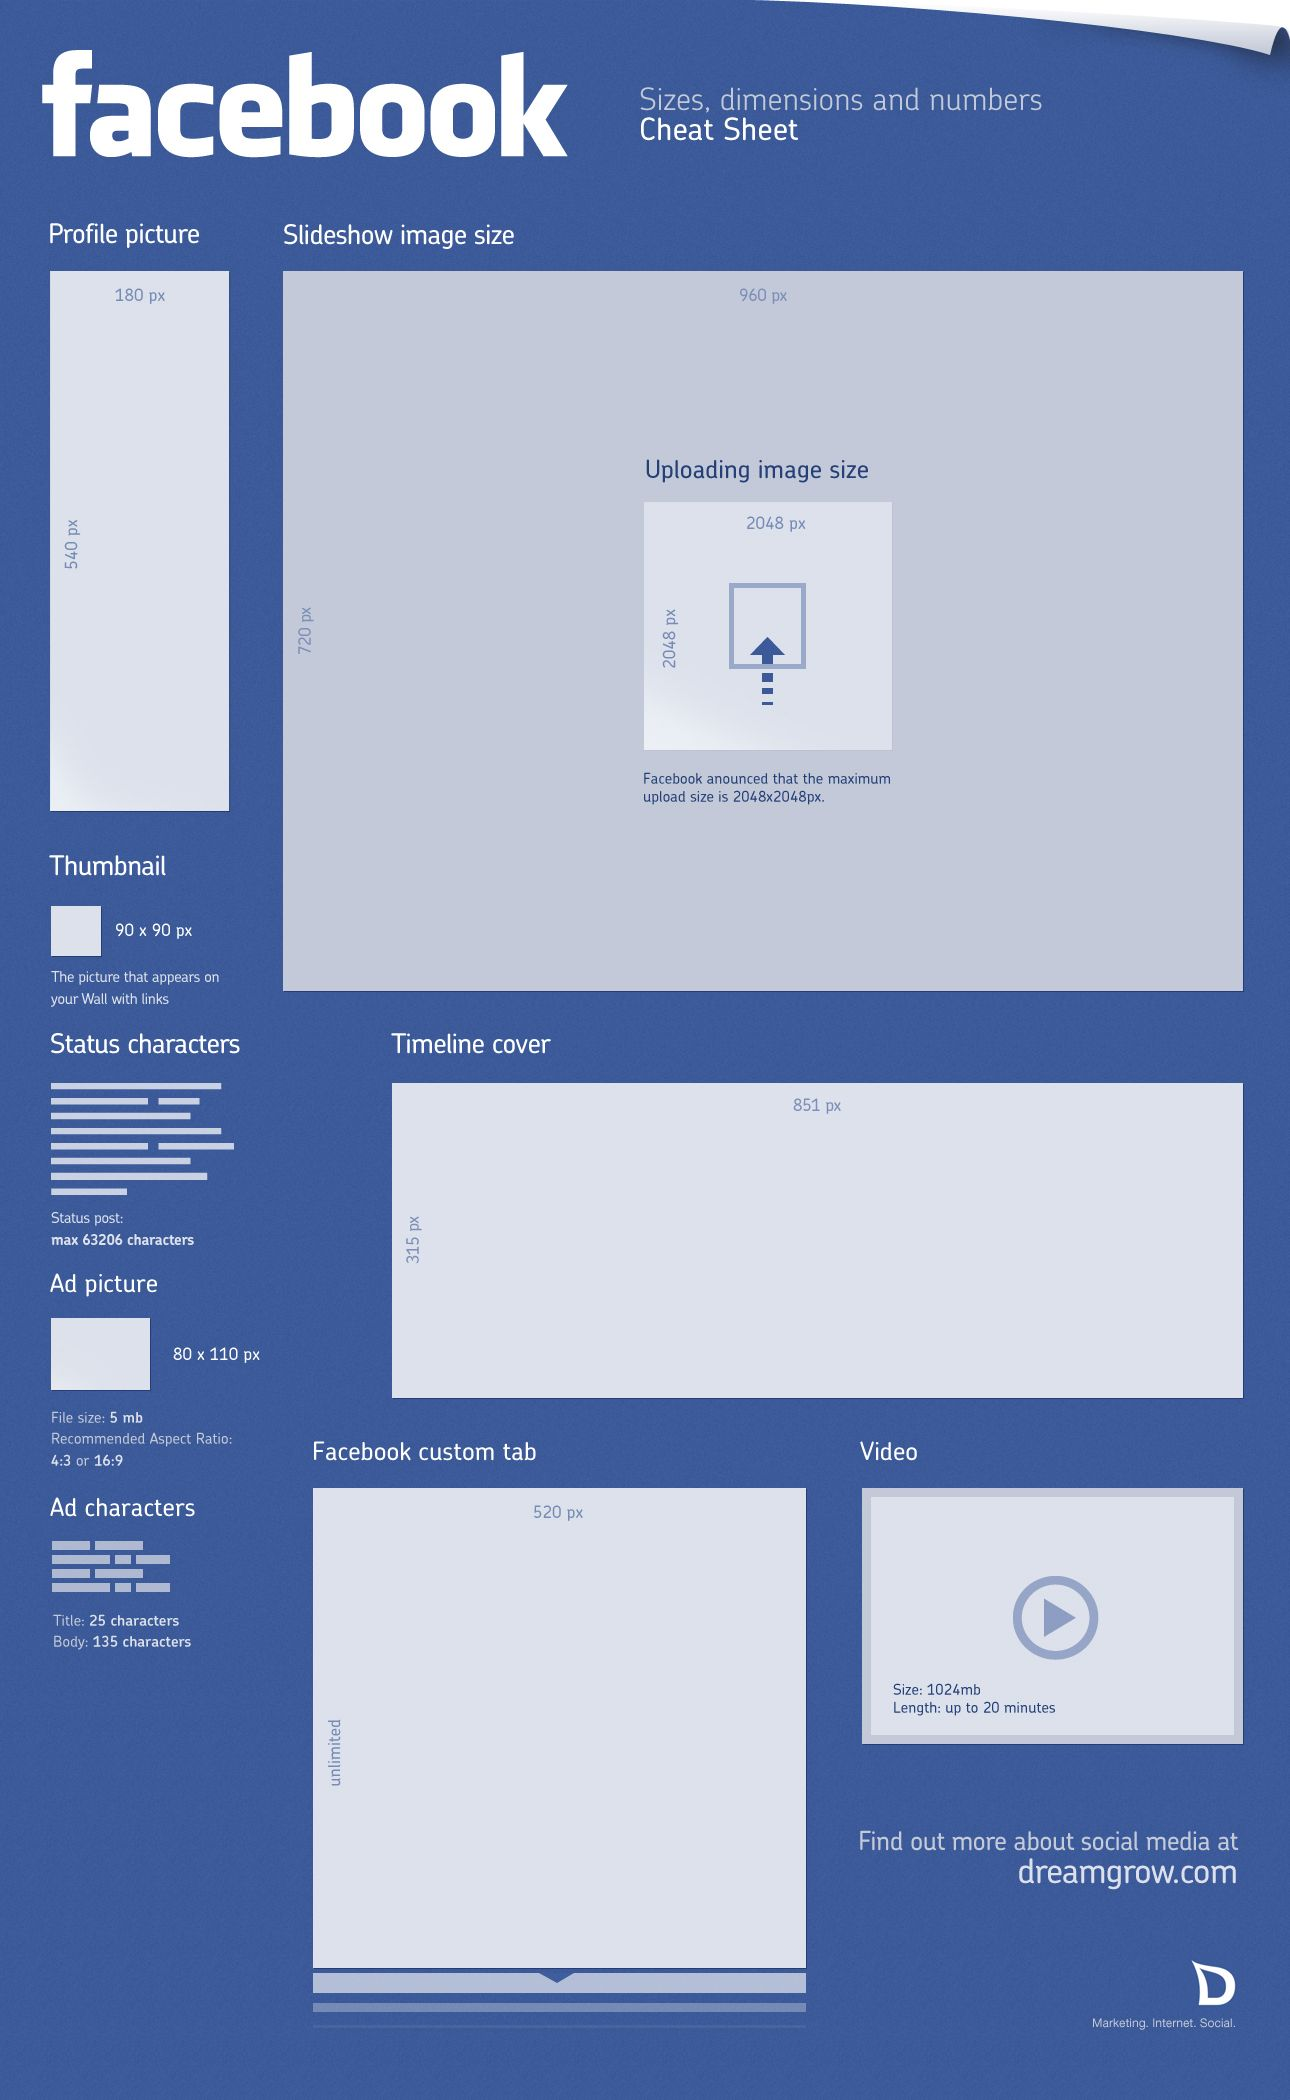 Facebook Cheat Sheet All Image Sizes, Dimensions, and